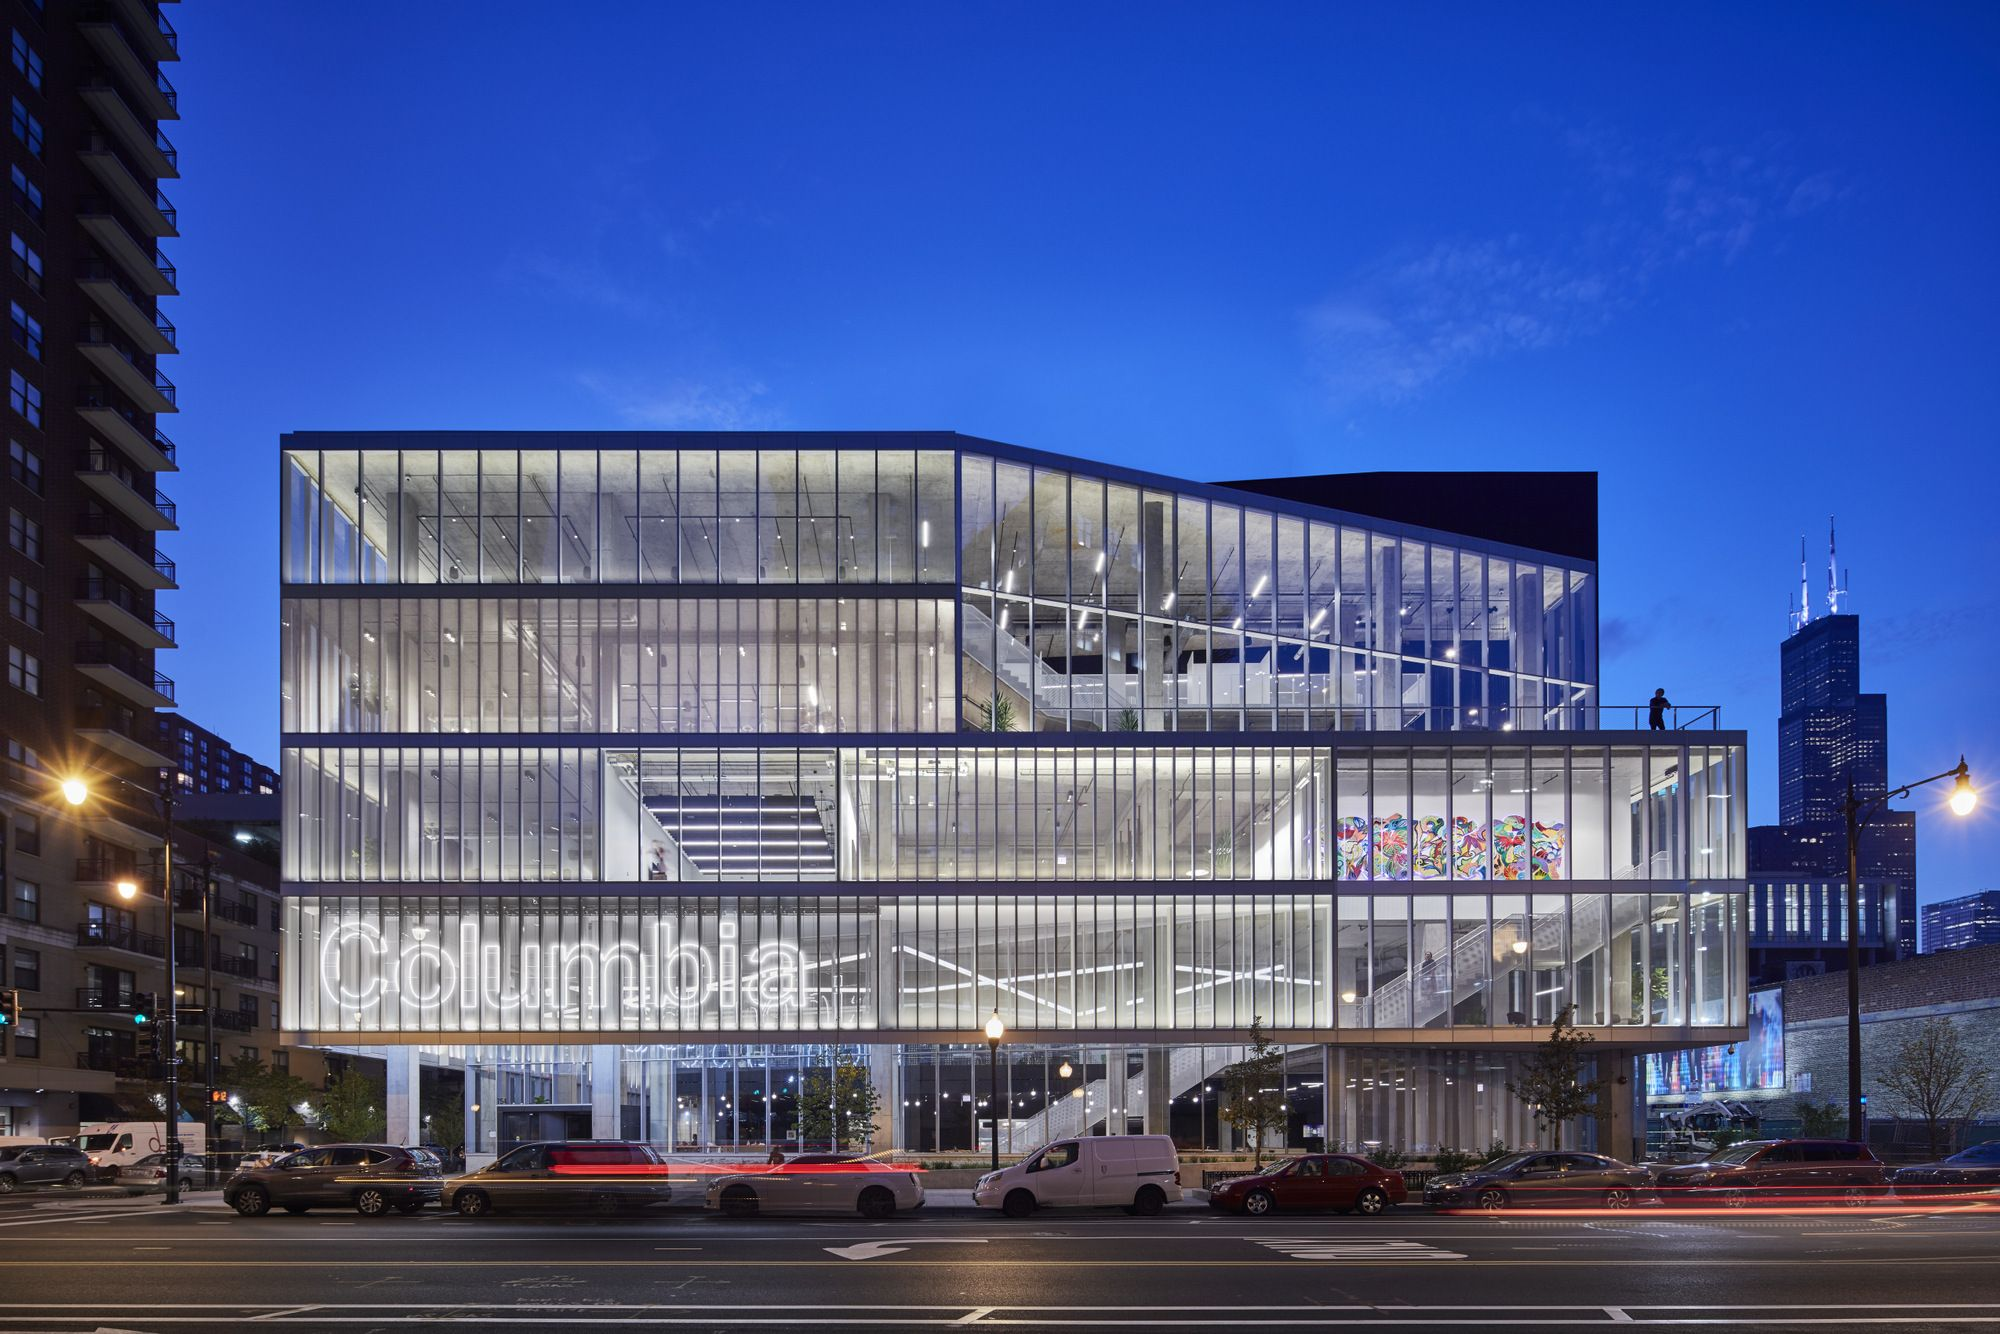 Gensler was tasked with bringing the first ever student